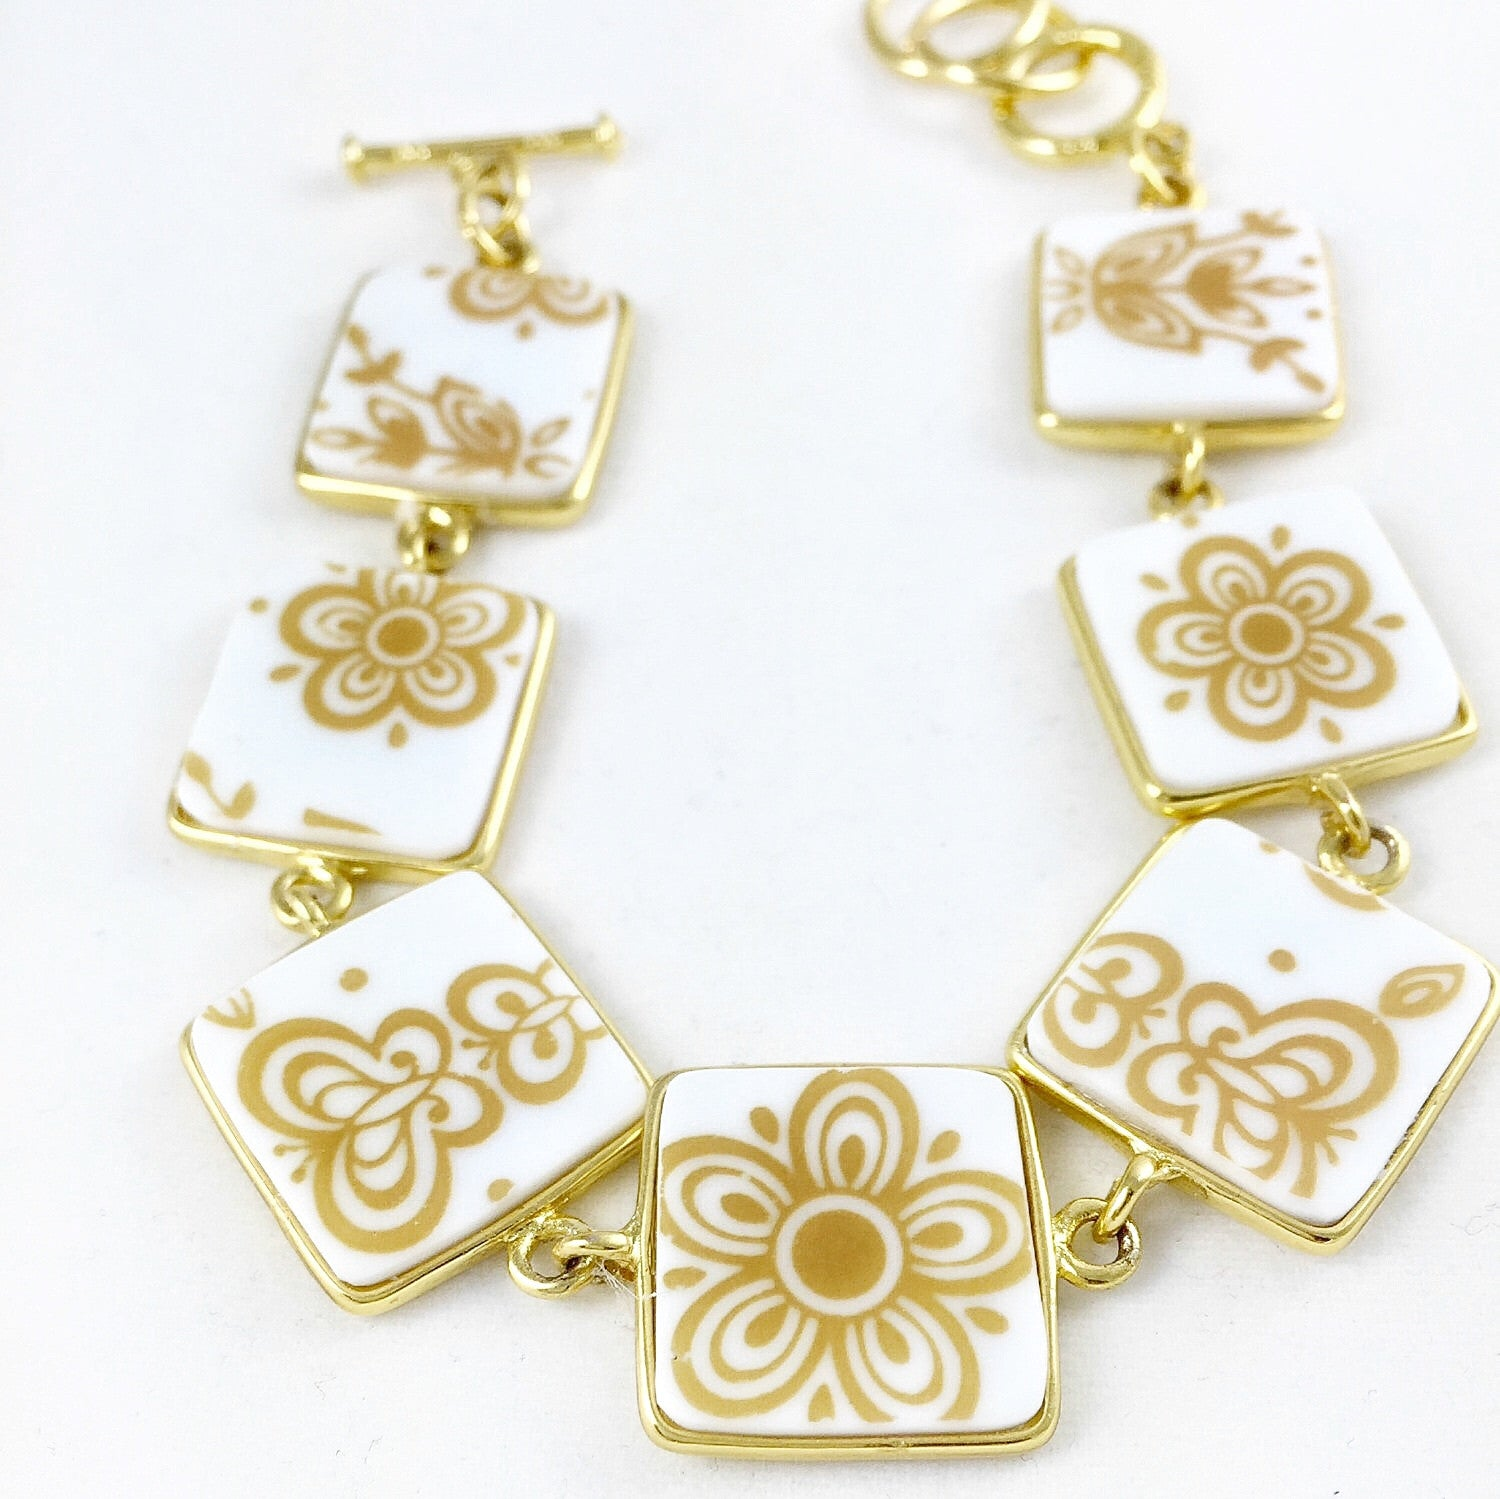 Broken China Jewelry - Golden Corelle bracelet additional image